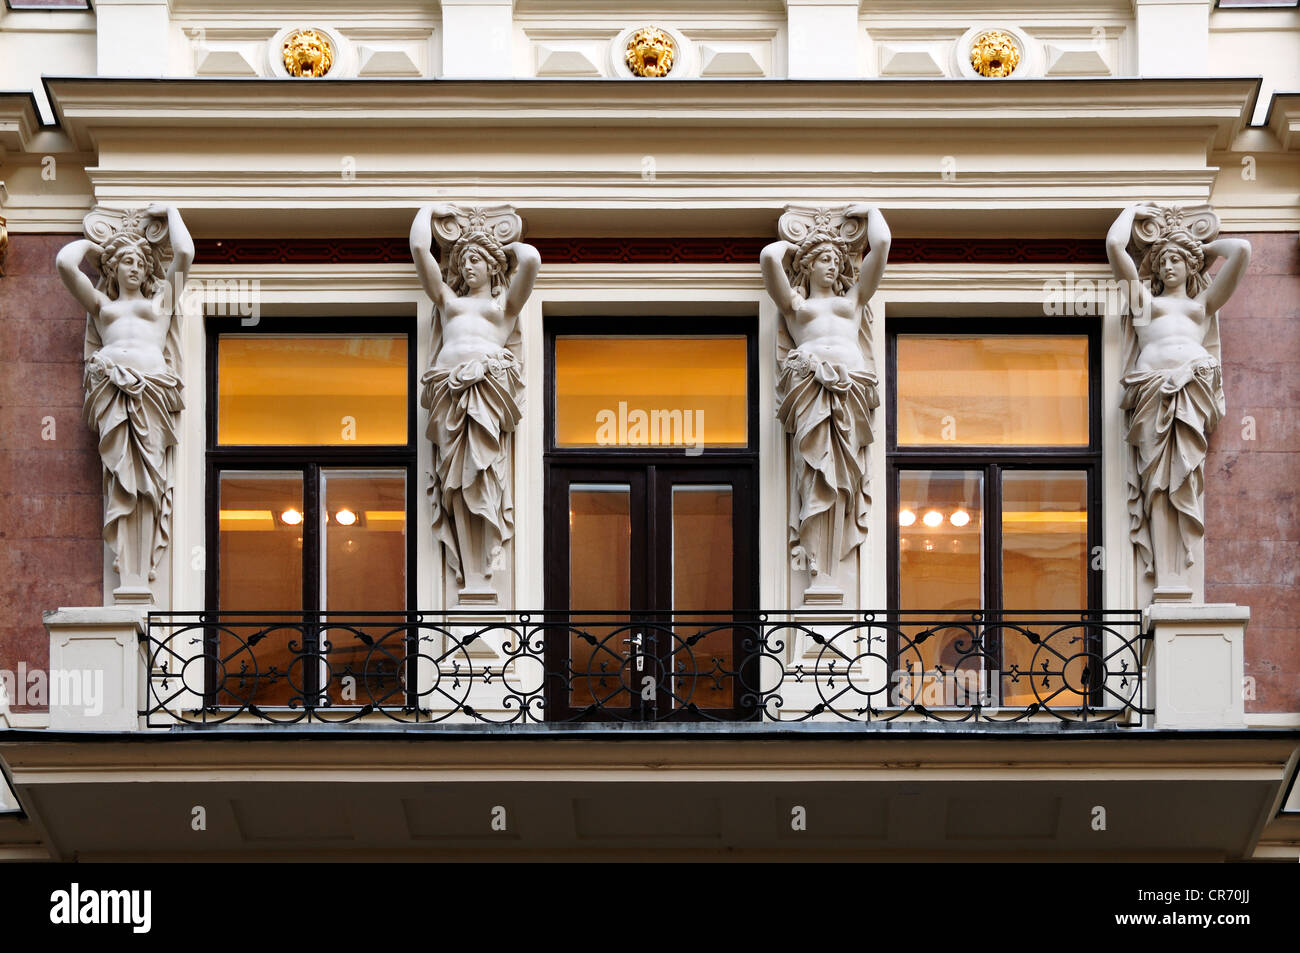 Four carriatides on a balcony of a wealthy middle-class home, 19th Century, Kaerntnerstrasse 5, Vienna, Austria, - Stock Image